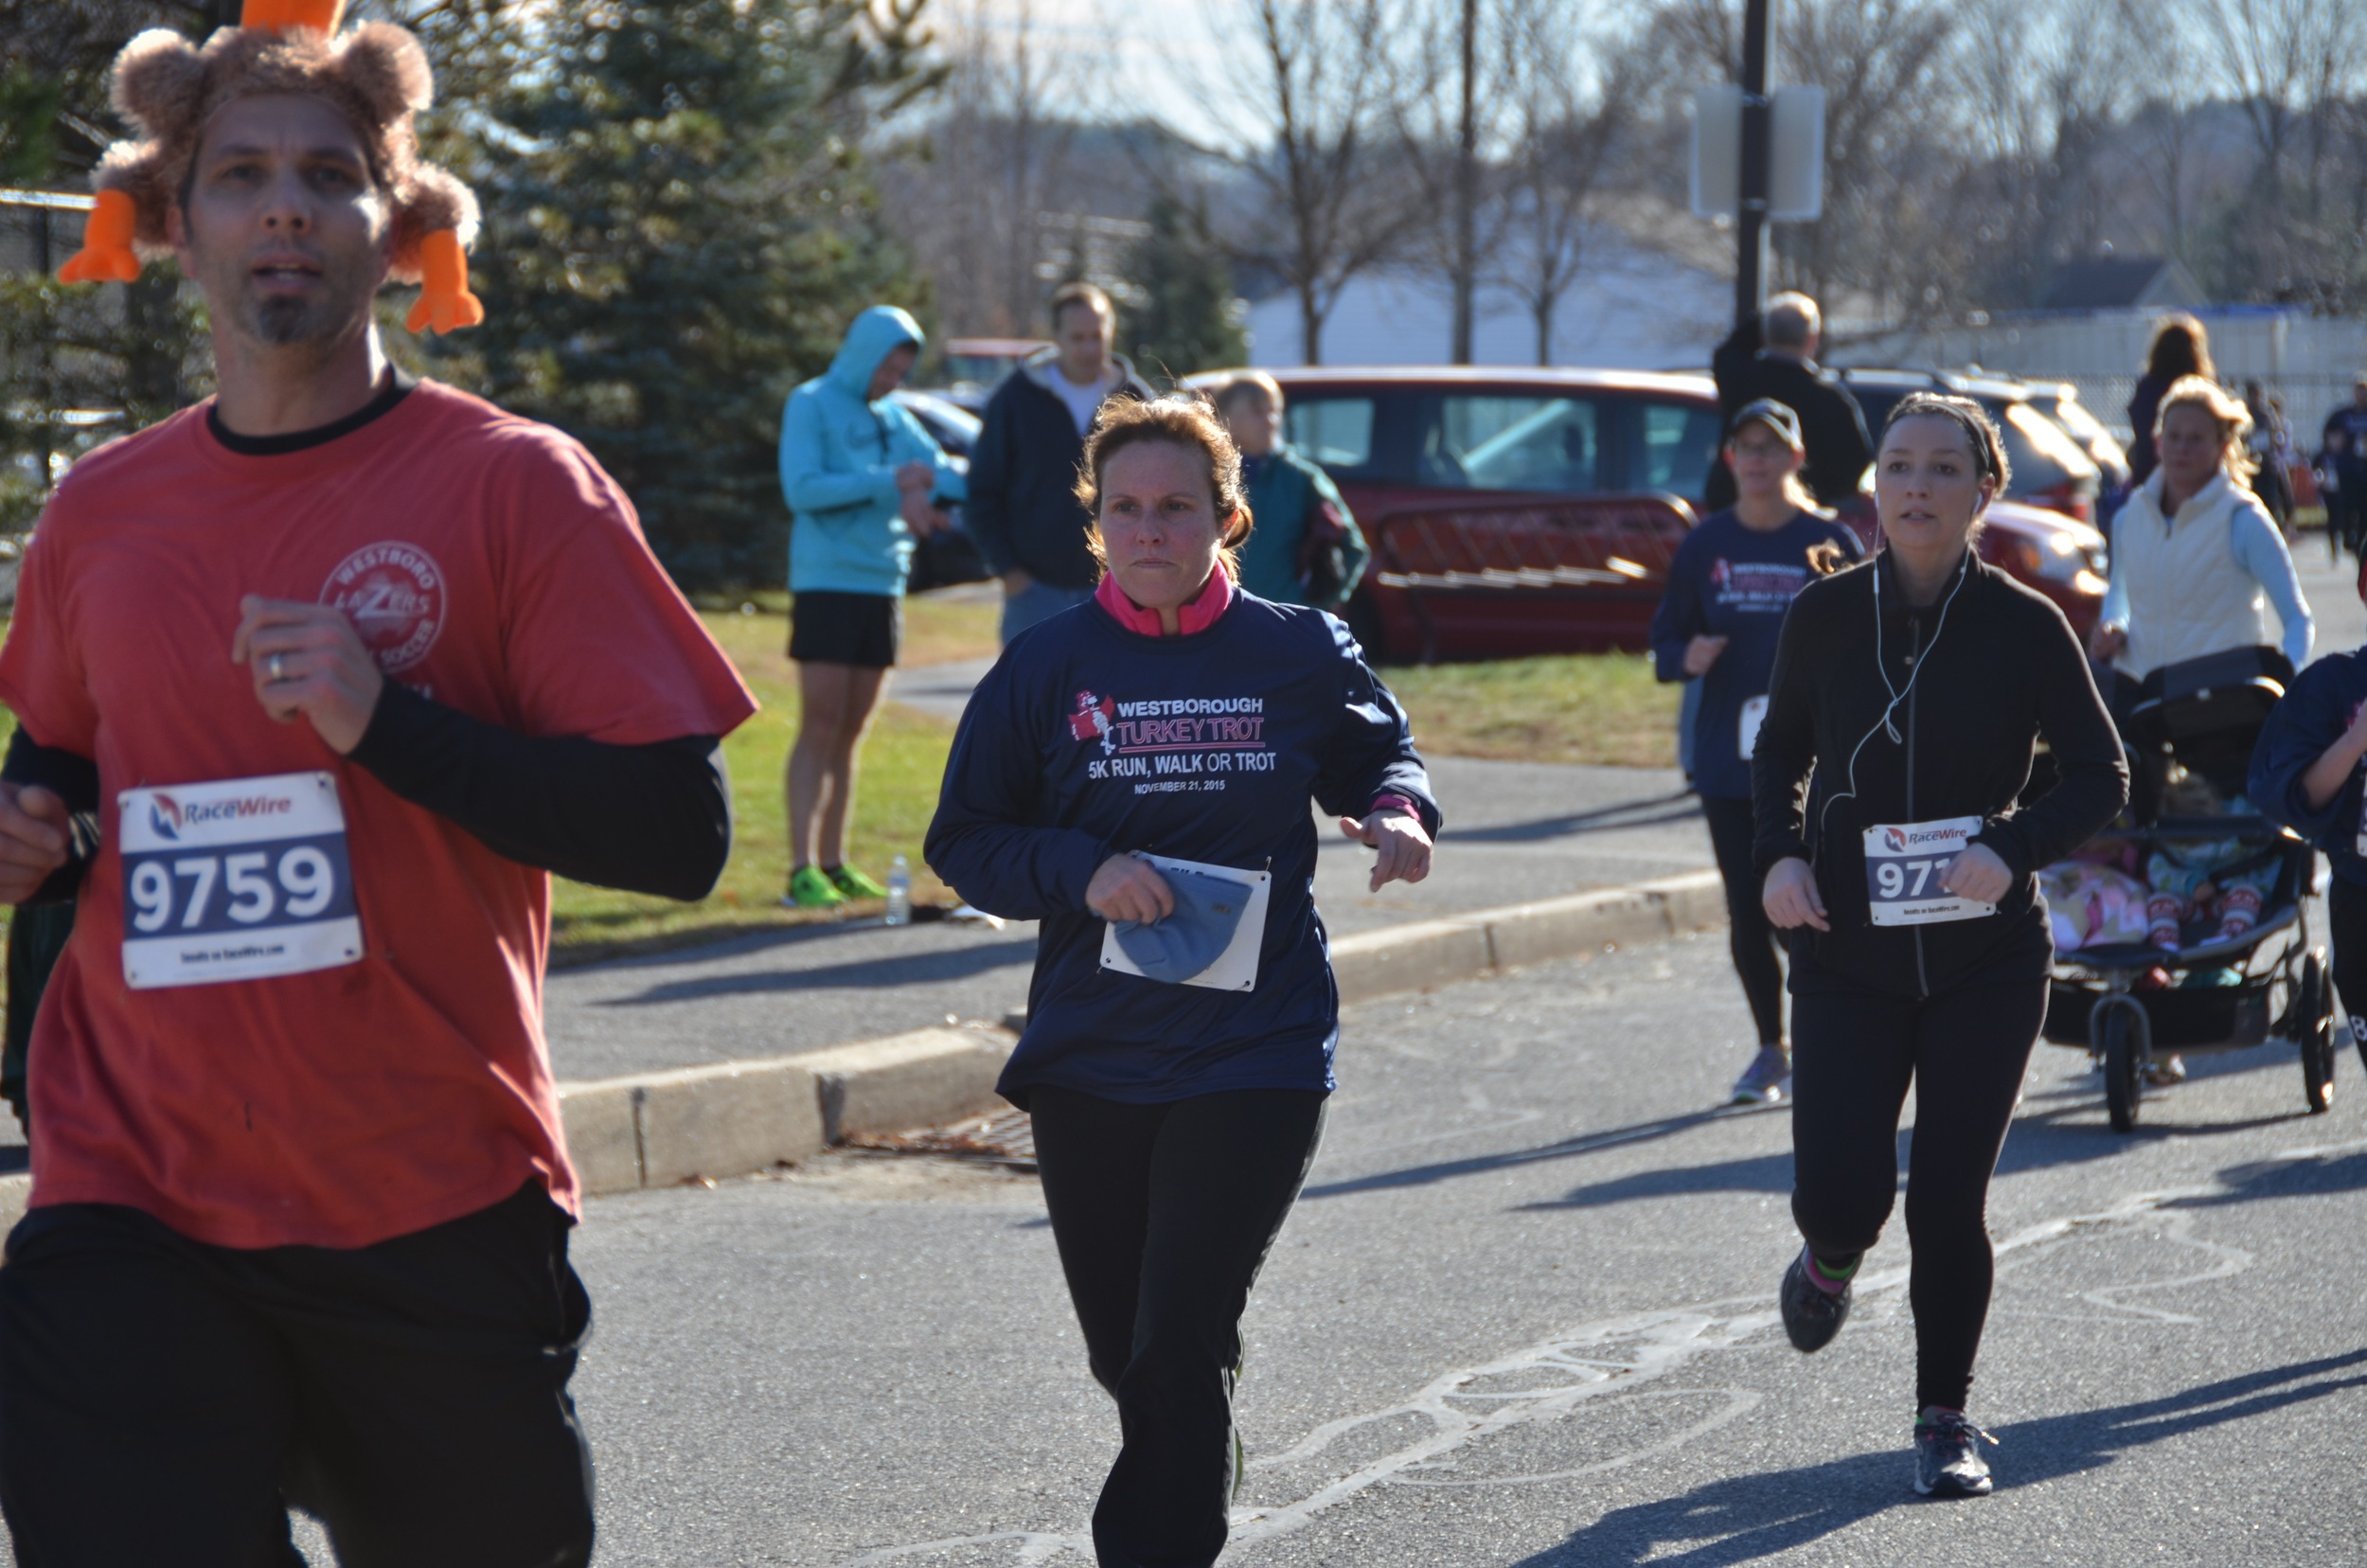 D7K_0030112-Westborough-Turkey-Trot-2015-11-21.jpg